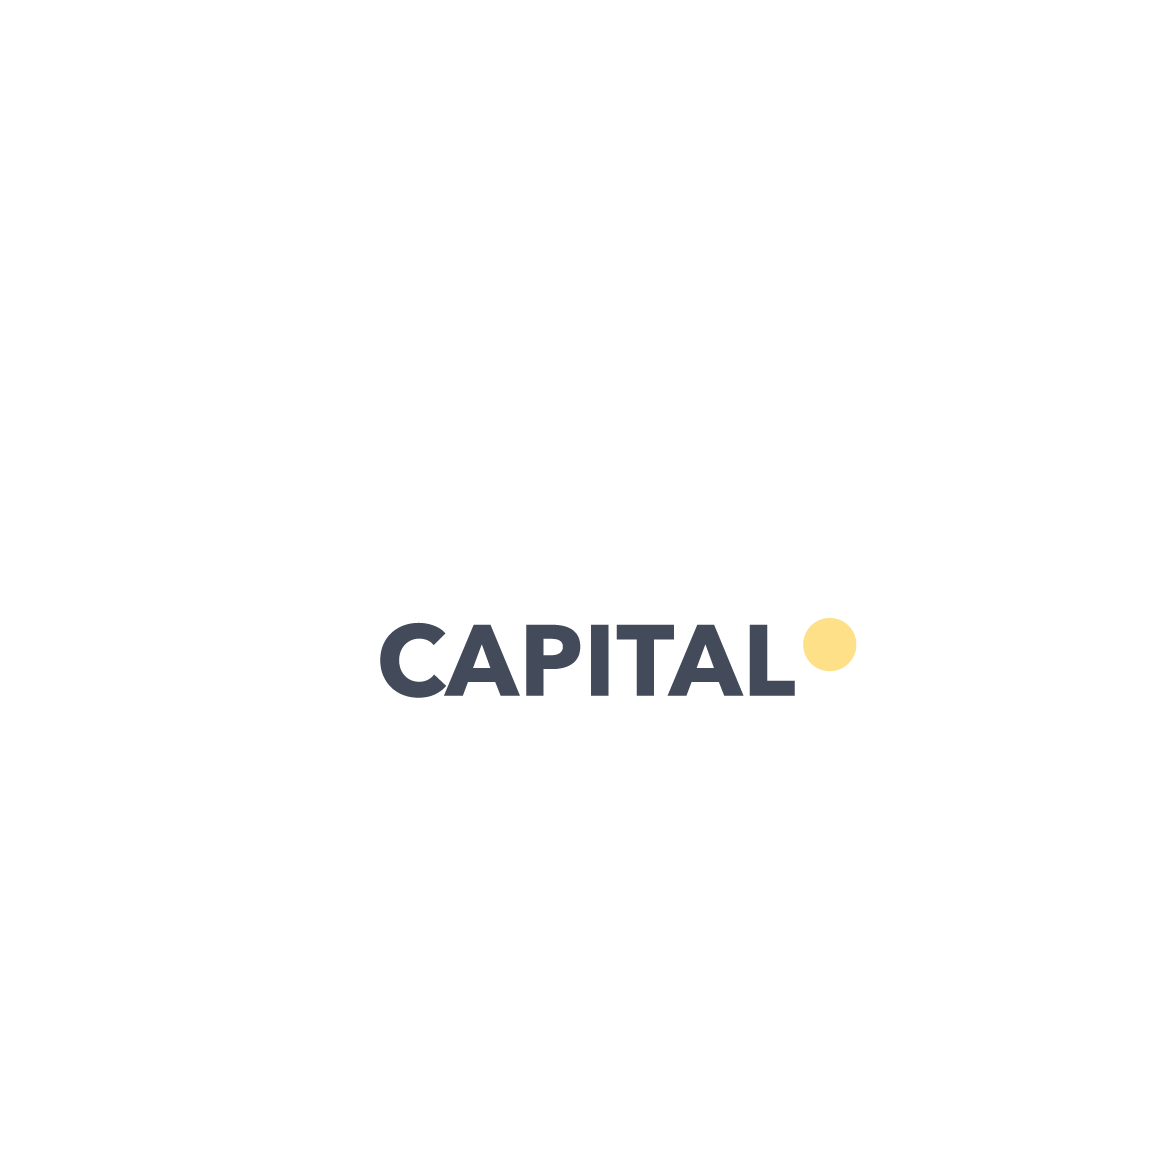 LOGO STOCKEN CAPITAL 2